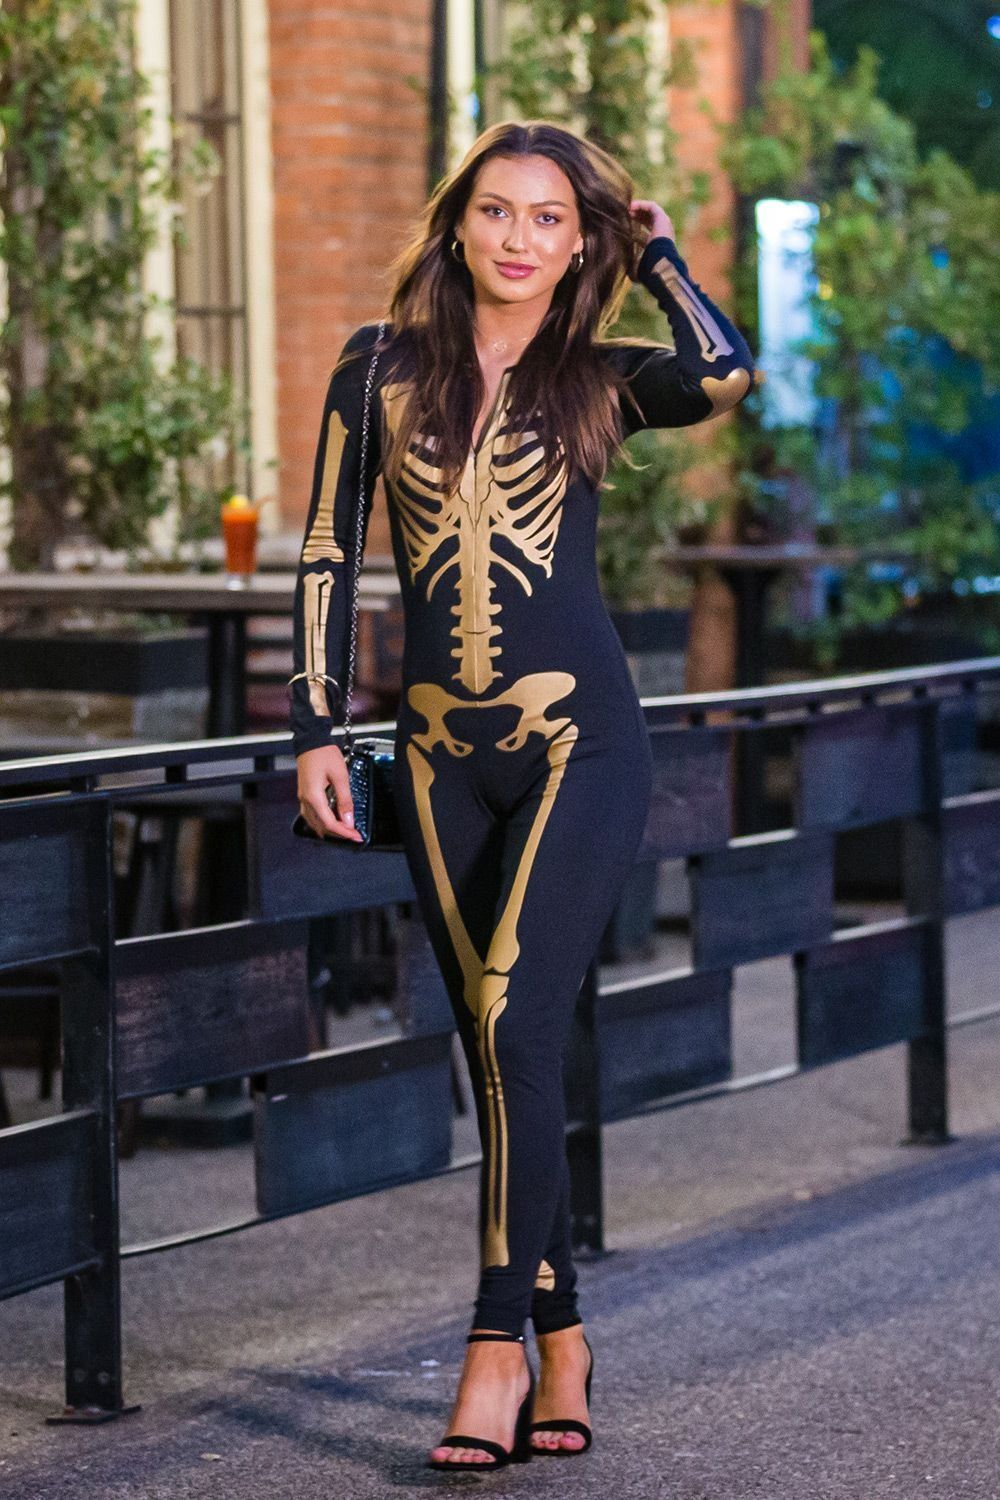 Gold Skeleton Costume Women's Halloween Outfits Tipsy